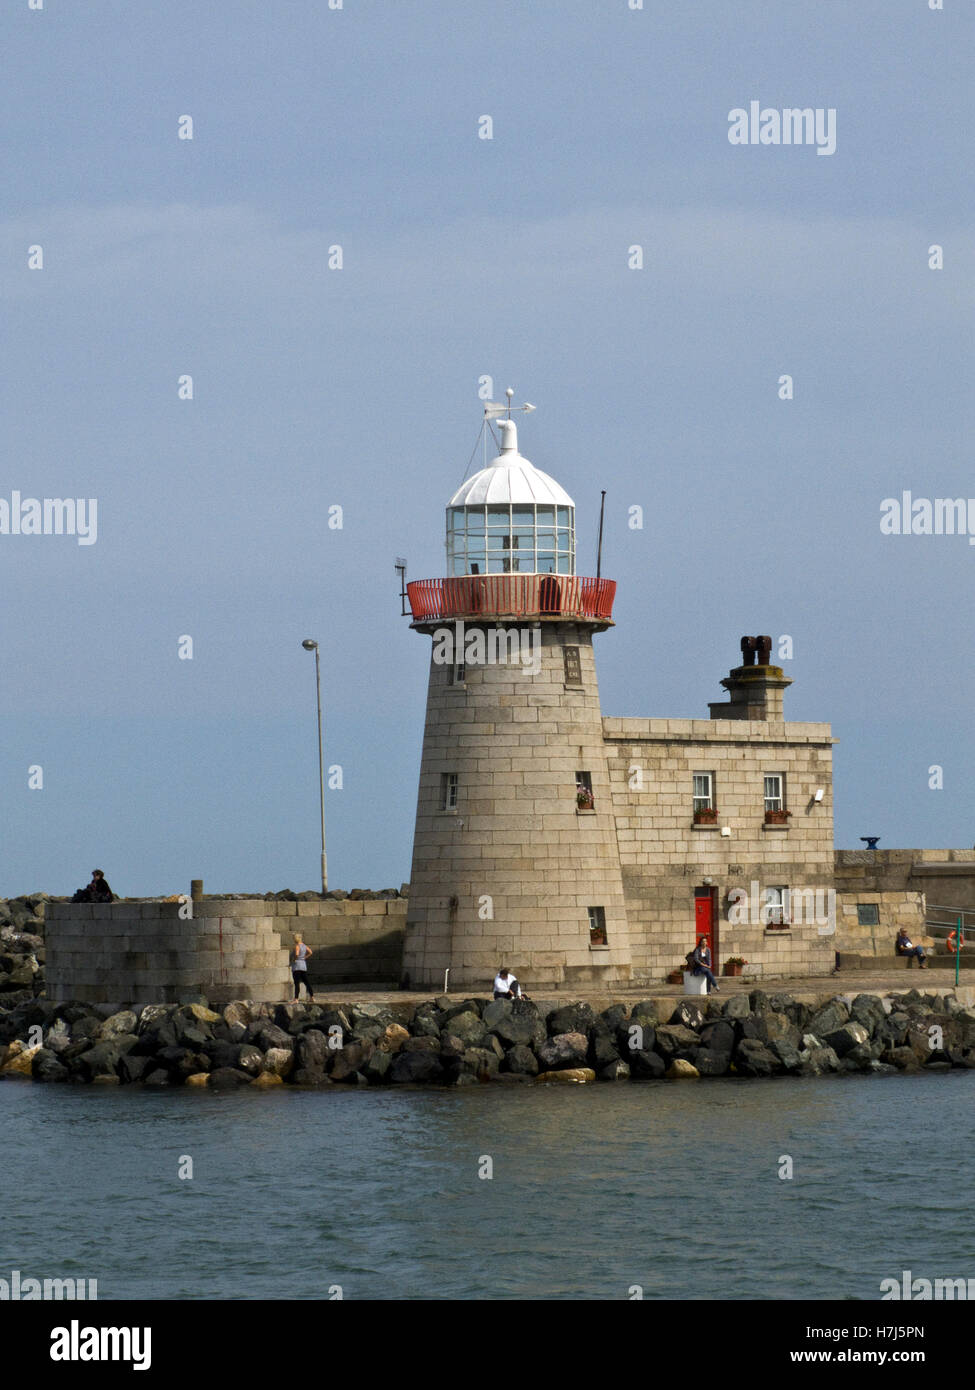 Howth Pier head lighthouse, dating from 1818, decommissioned in 1982, Howth, Co Dublin, Eire, Republic of Ireland, - Stock Image